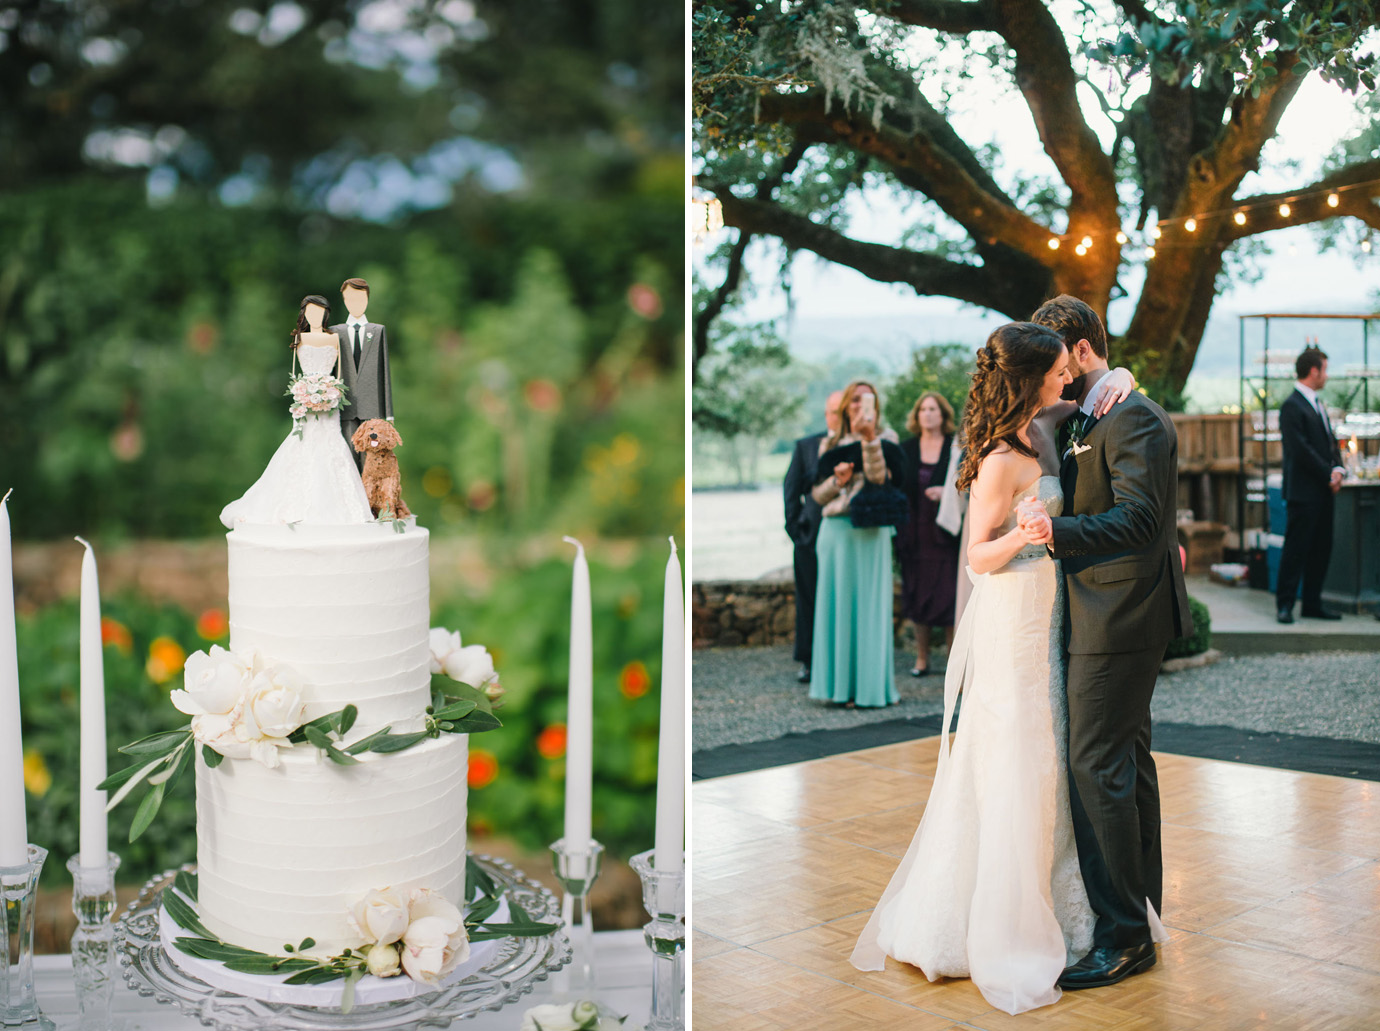 39-real-wedding-at-beltane-ranch001